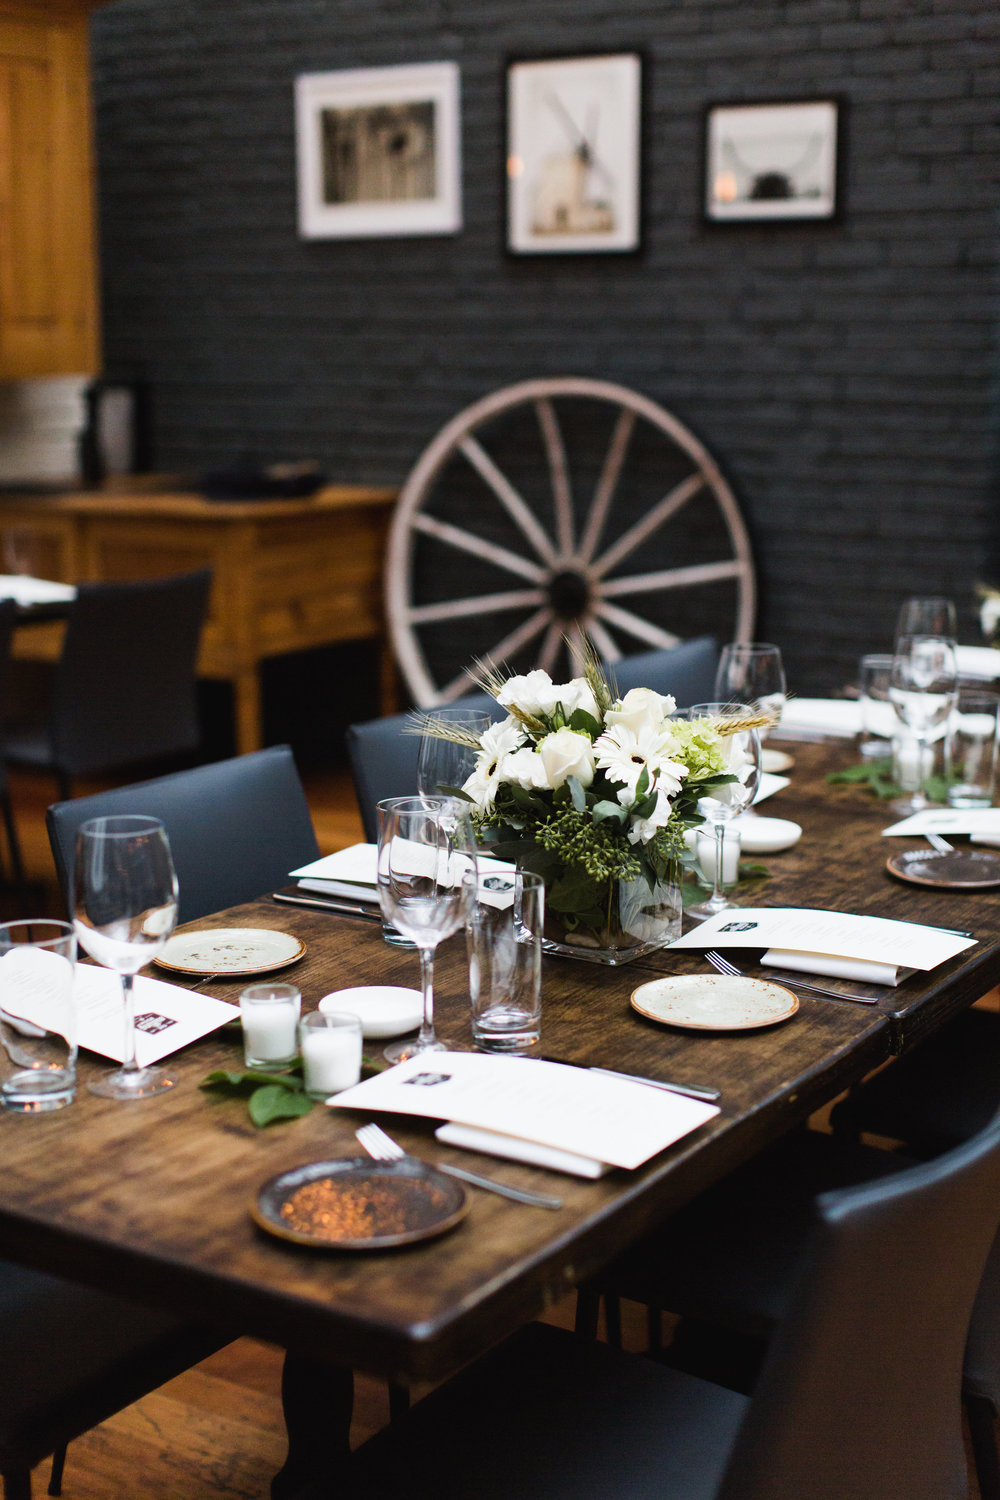 The milling room restaurant upper west side american for Table 52 reservations